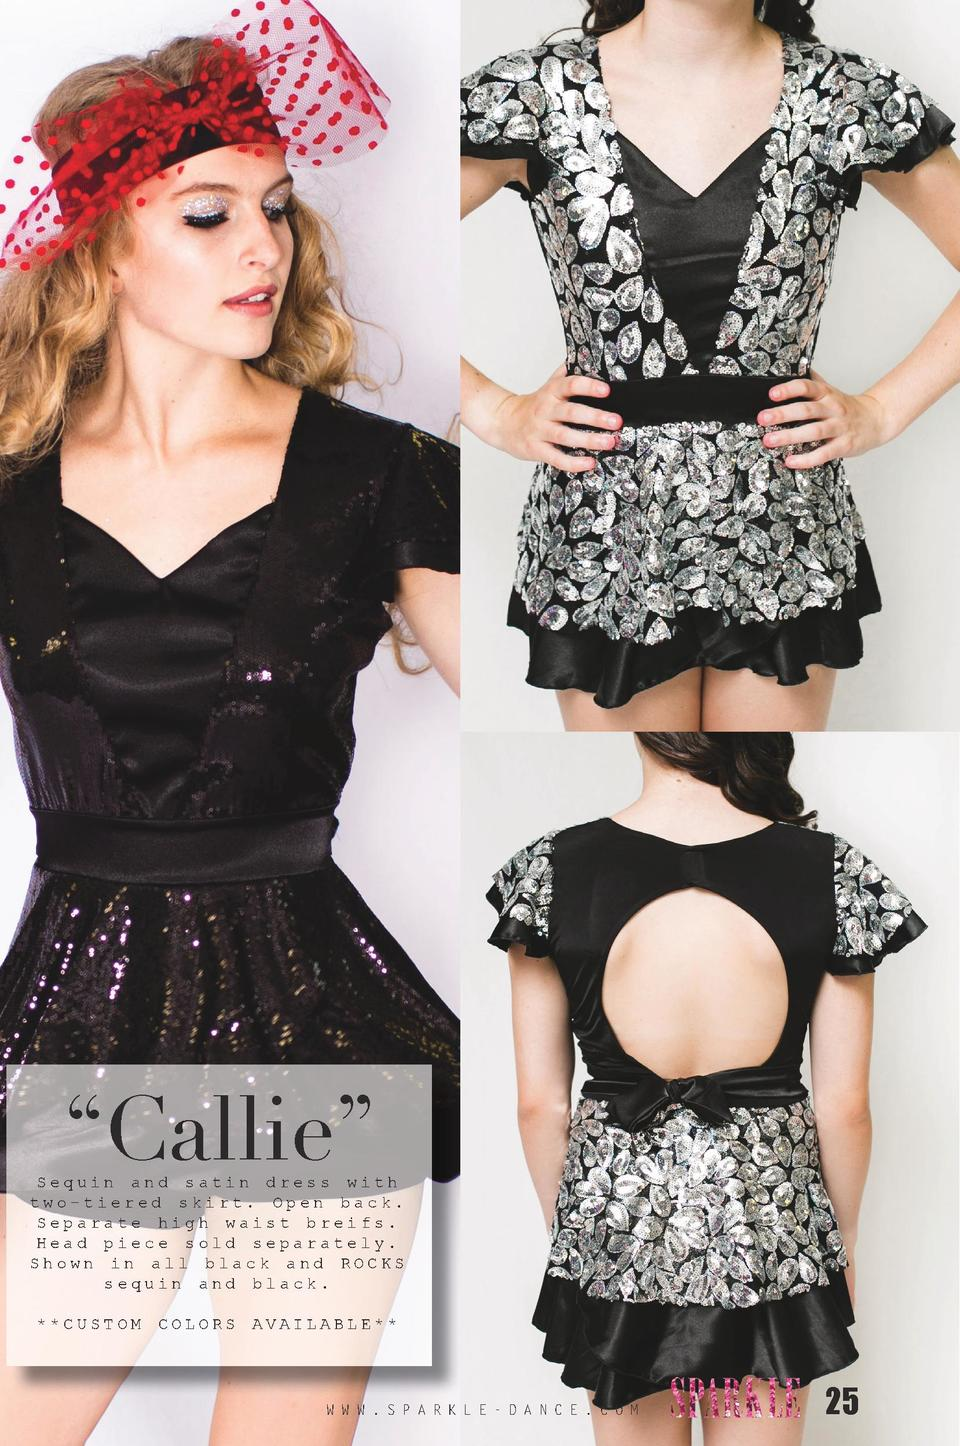 Callie     Sequin and satin dress with two-tiered skirt. Open back. Separate high waist breifs. Head piece sold separat...